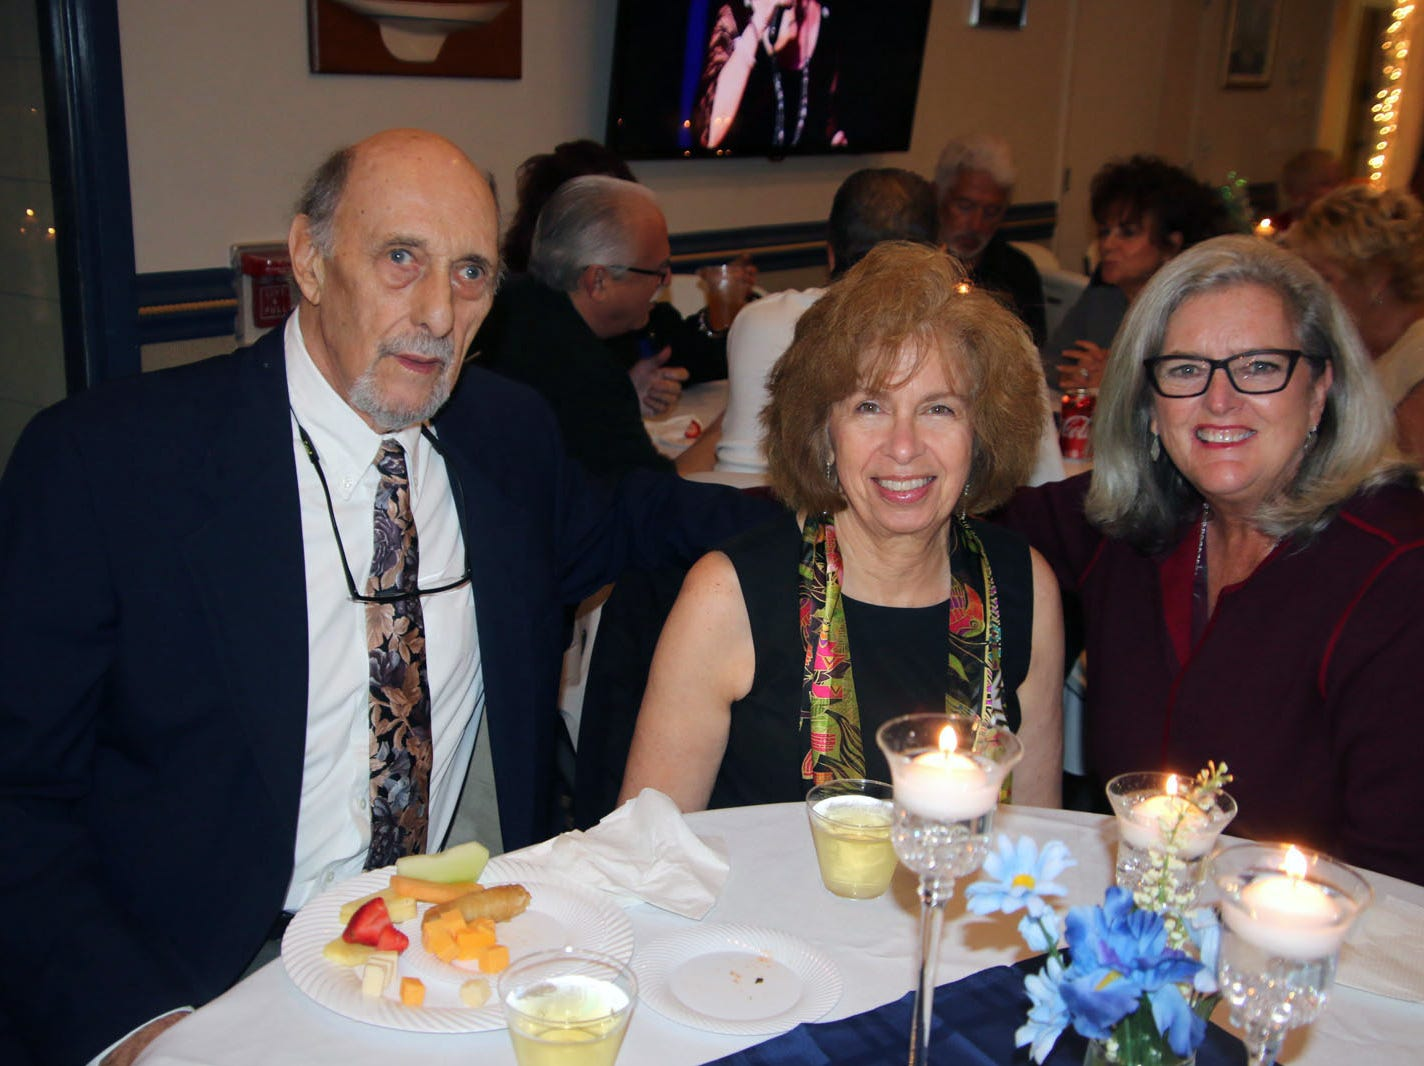 Michael and Janet DiNapoli and Katherine Briggs at the Dollars for Scholars fundraiser at the Fort Pierce Yacht Club on Jan. 27.